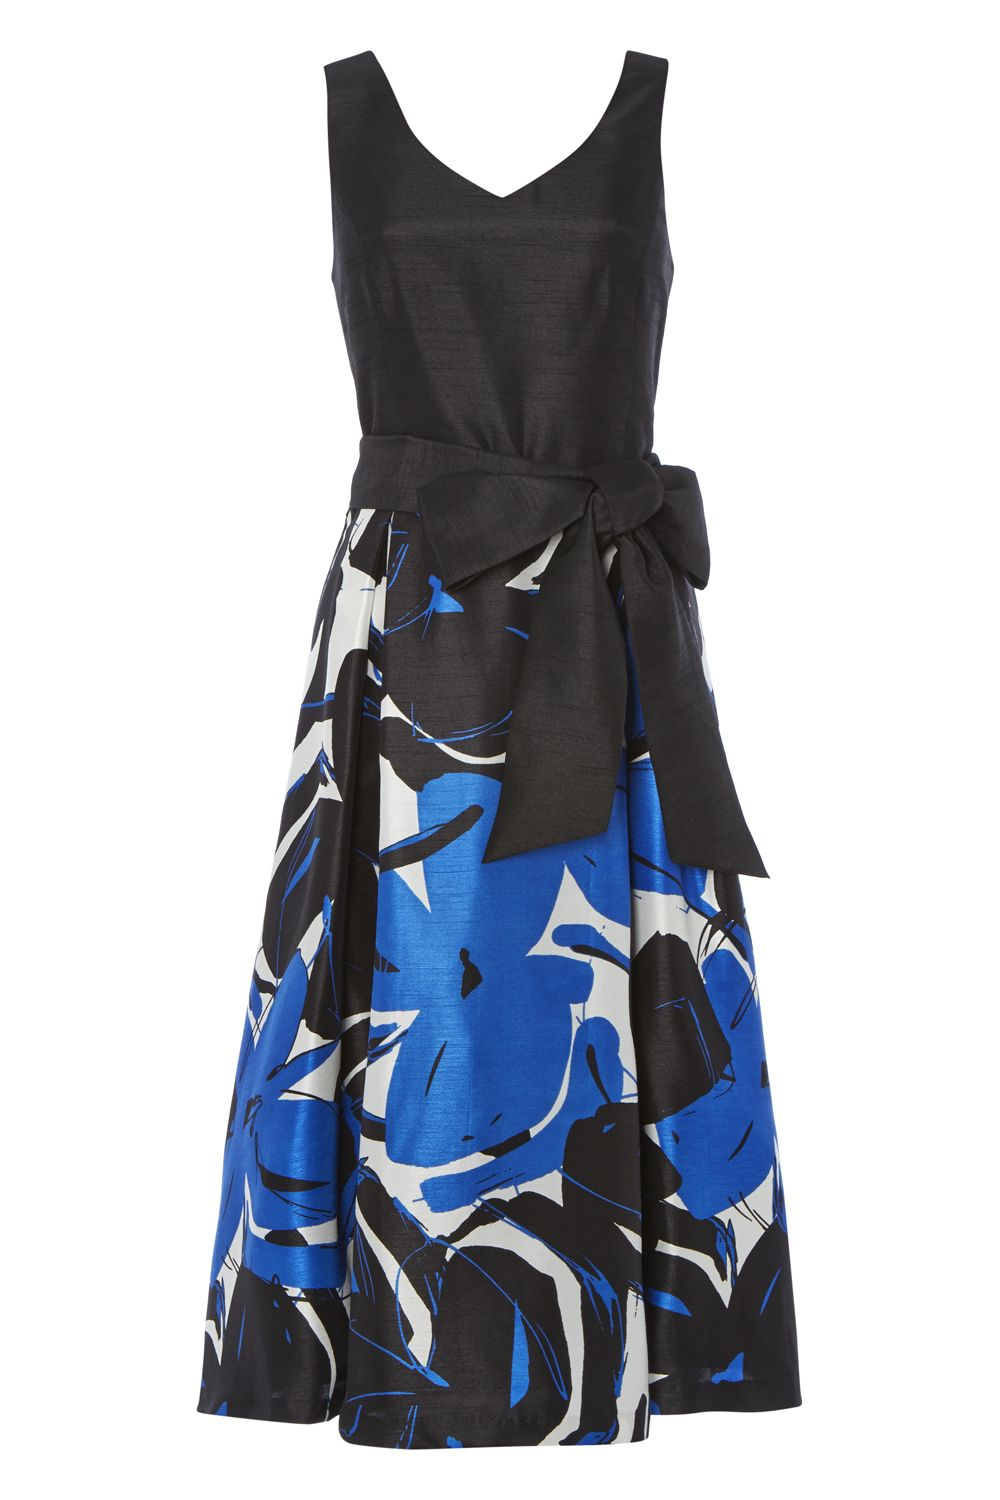 Roman Originals Contrast Floral Fit and Flare Dress, Royal Blue